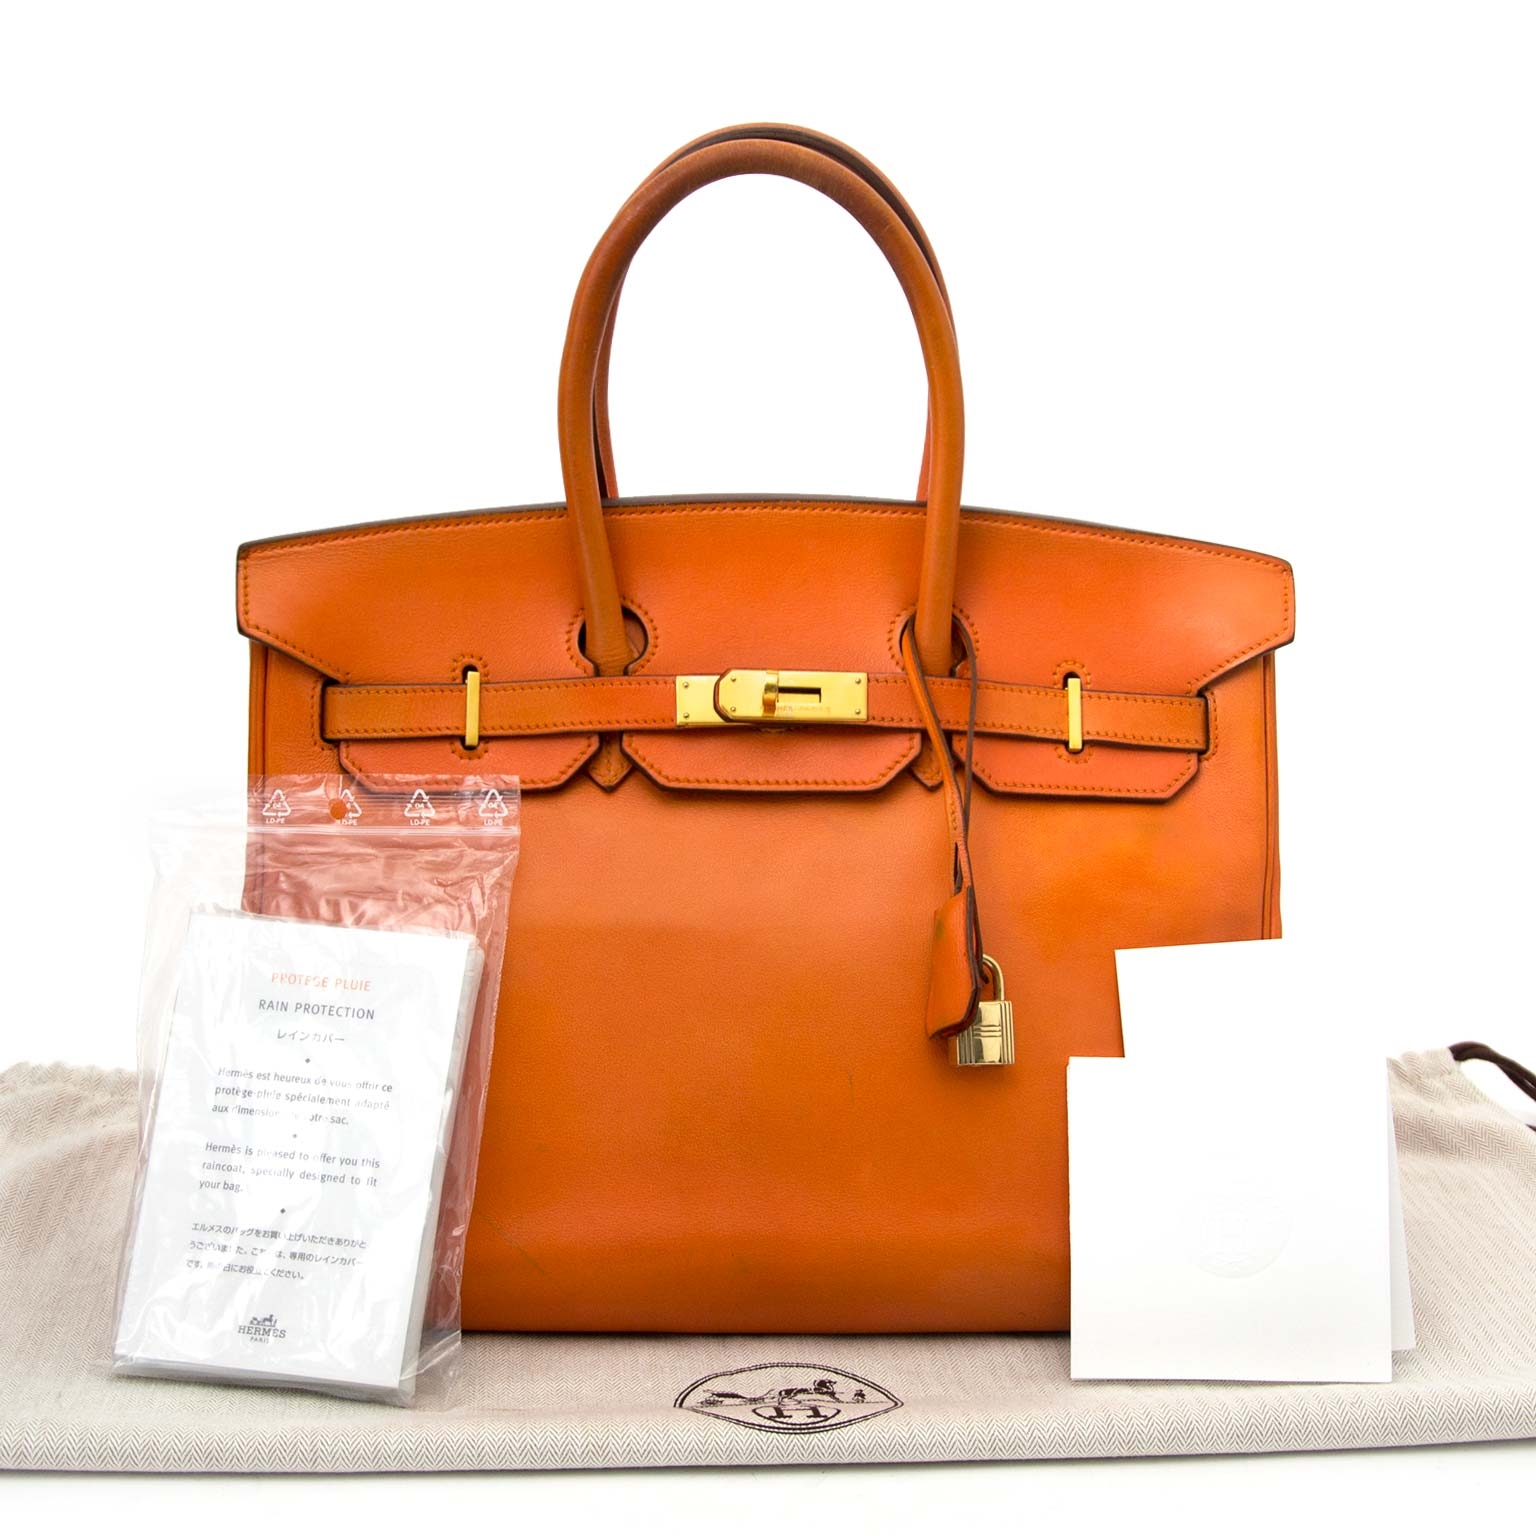 87dfa3fd6a12 ... skip the waitinglist and shop safe online your secondhand Hermes Swift  Birkin 35 Orange Hermes PHW